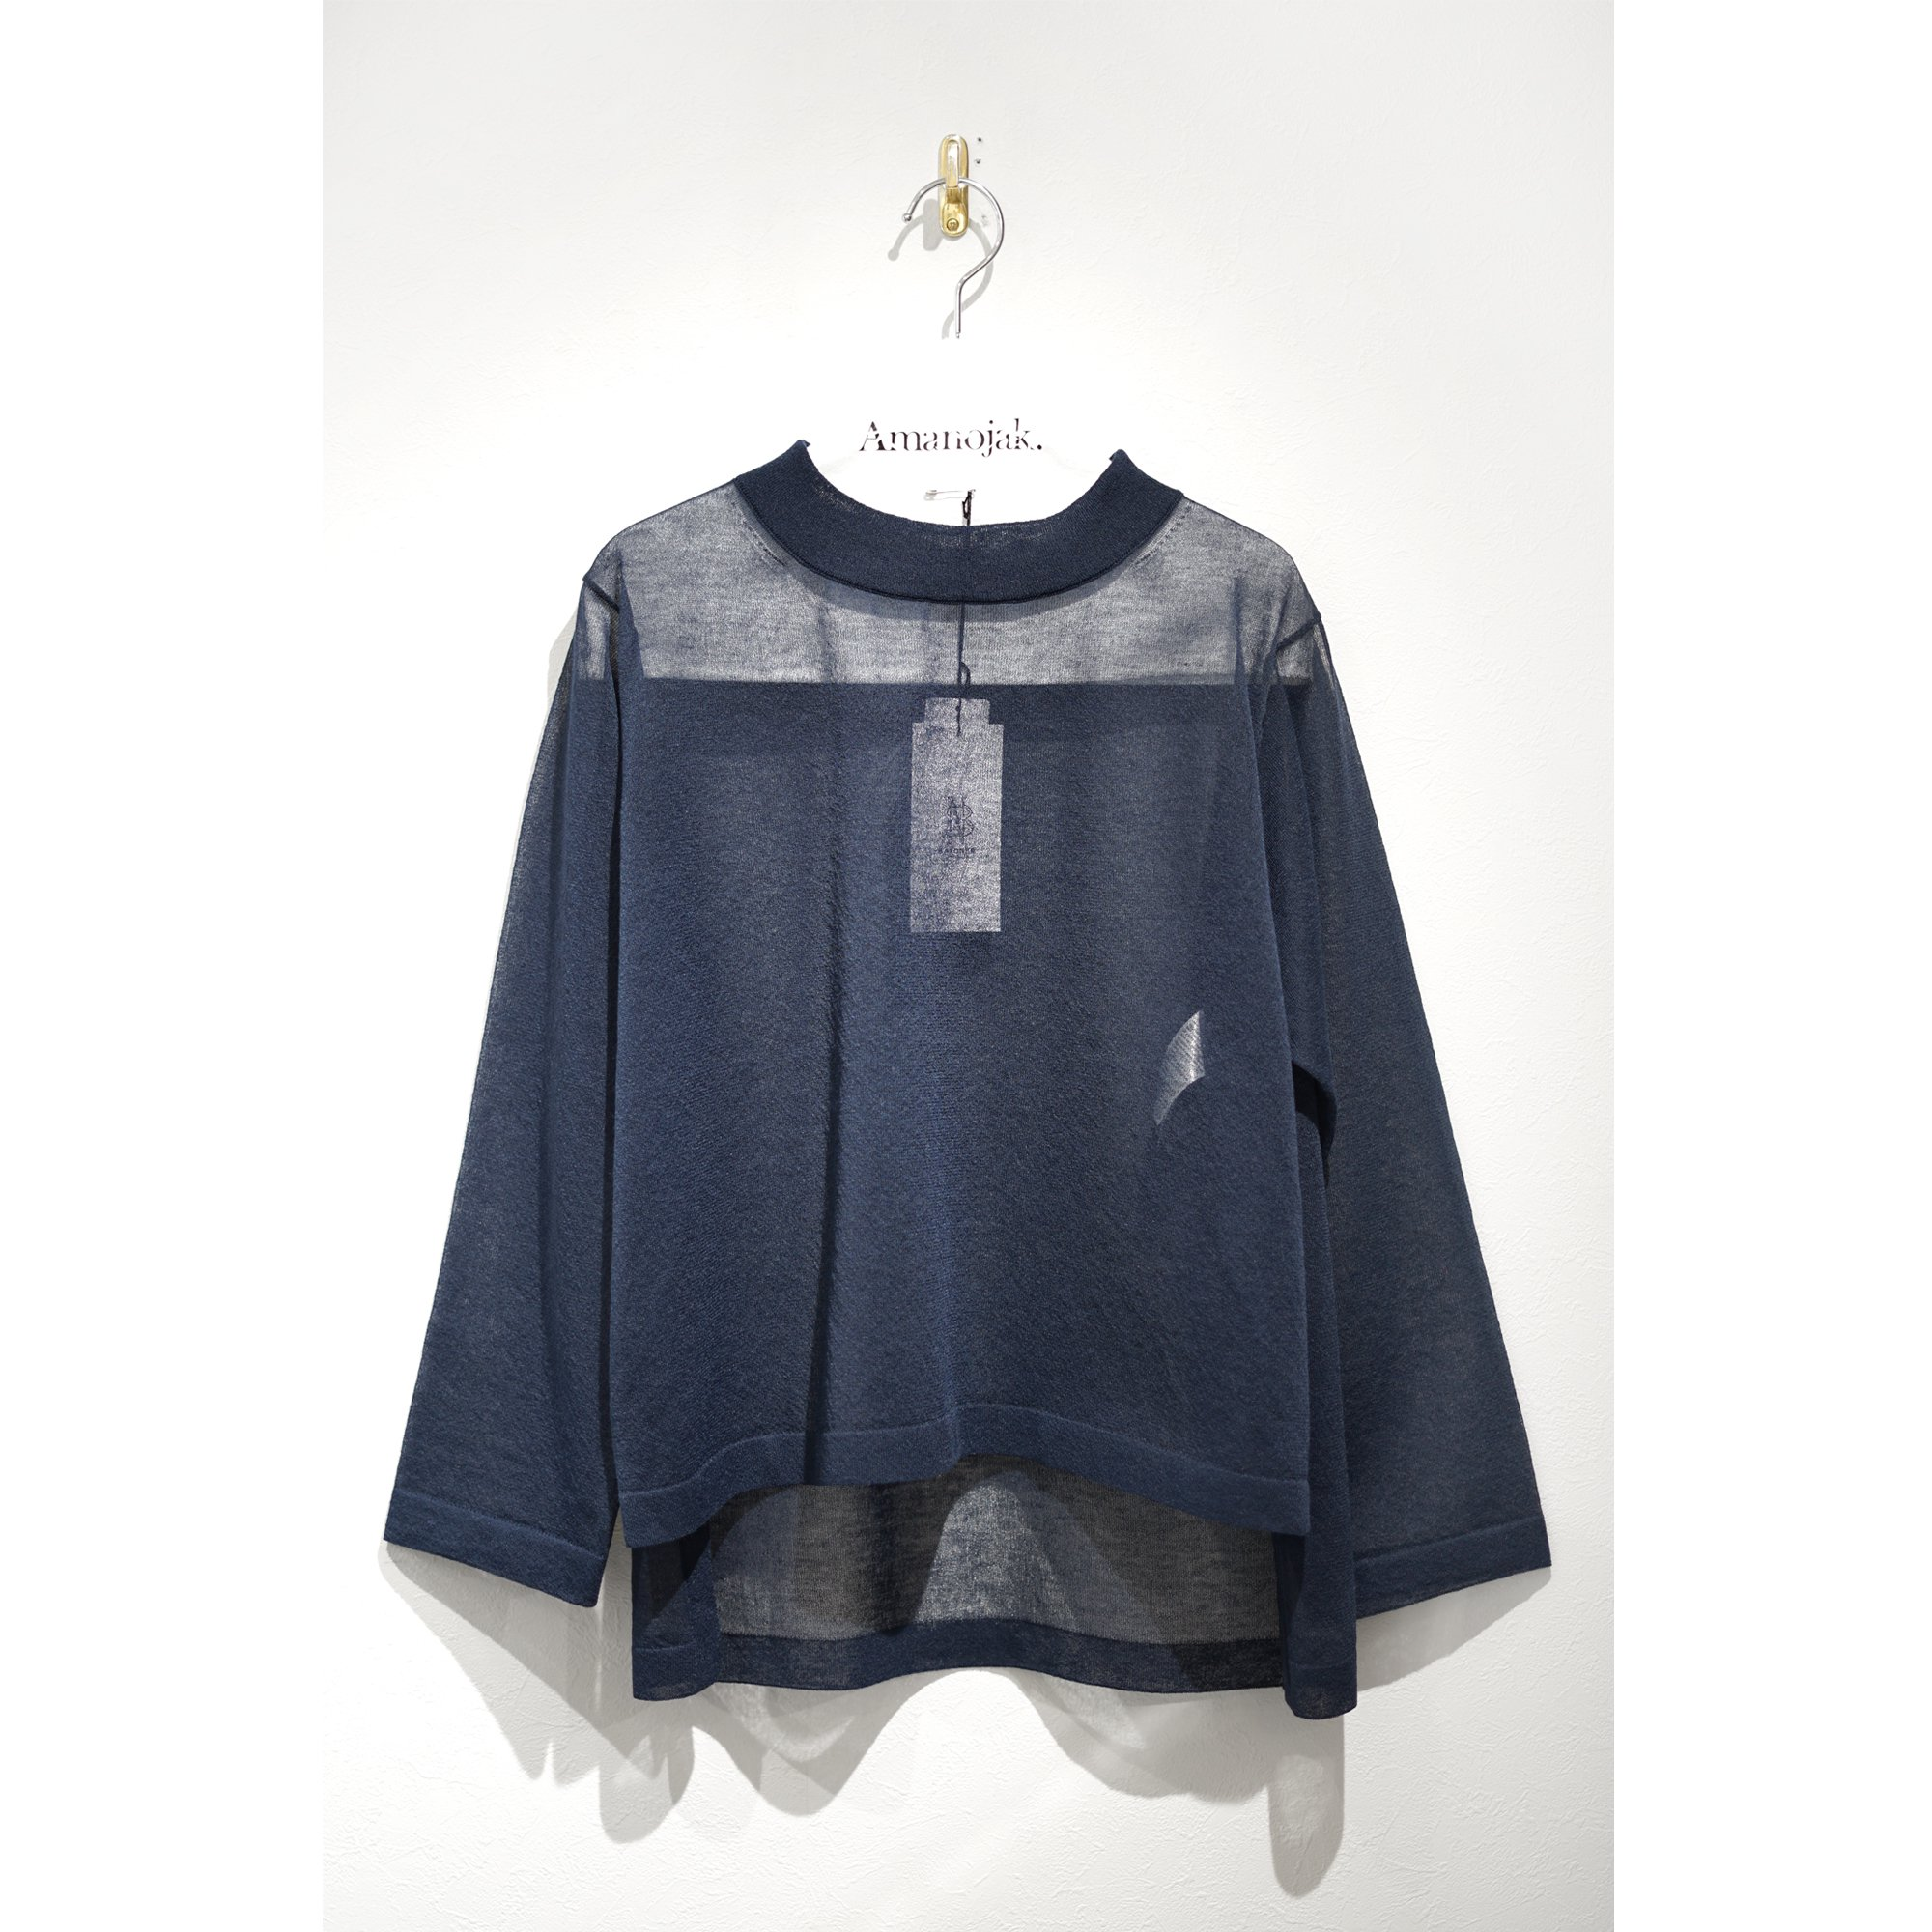 BATONER-SEE THROUGH CREW NECK NAVY